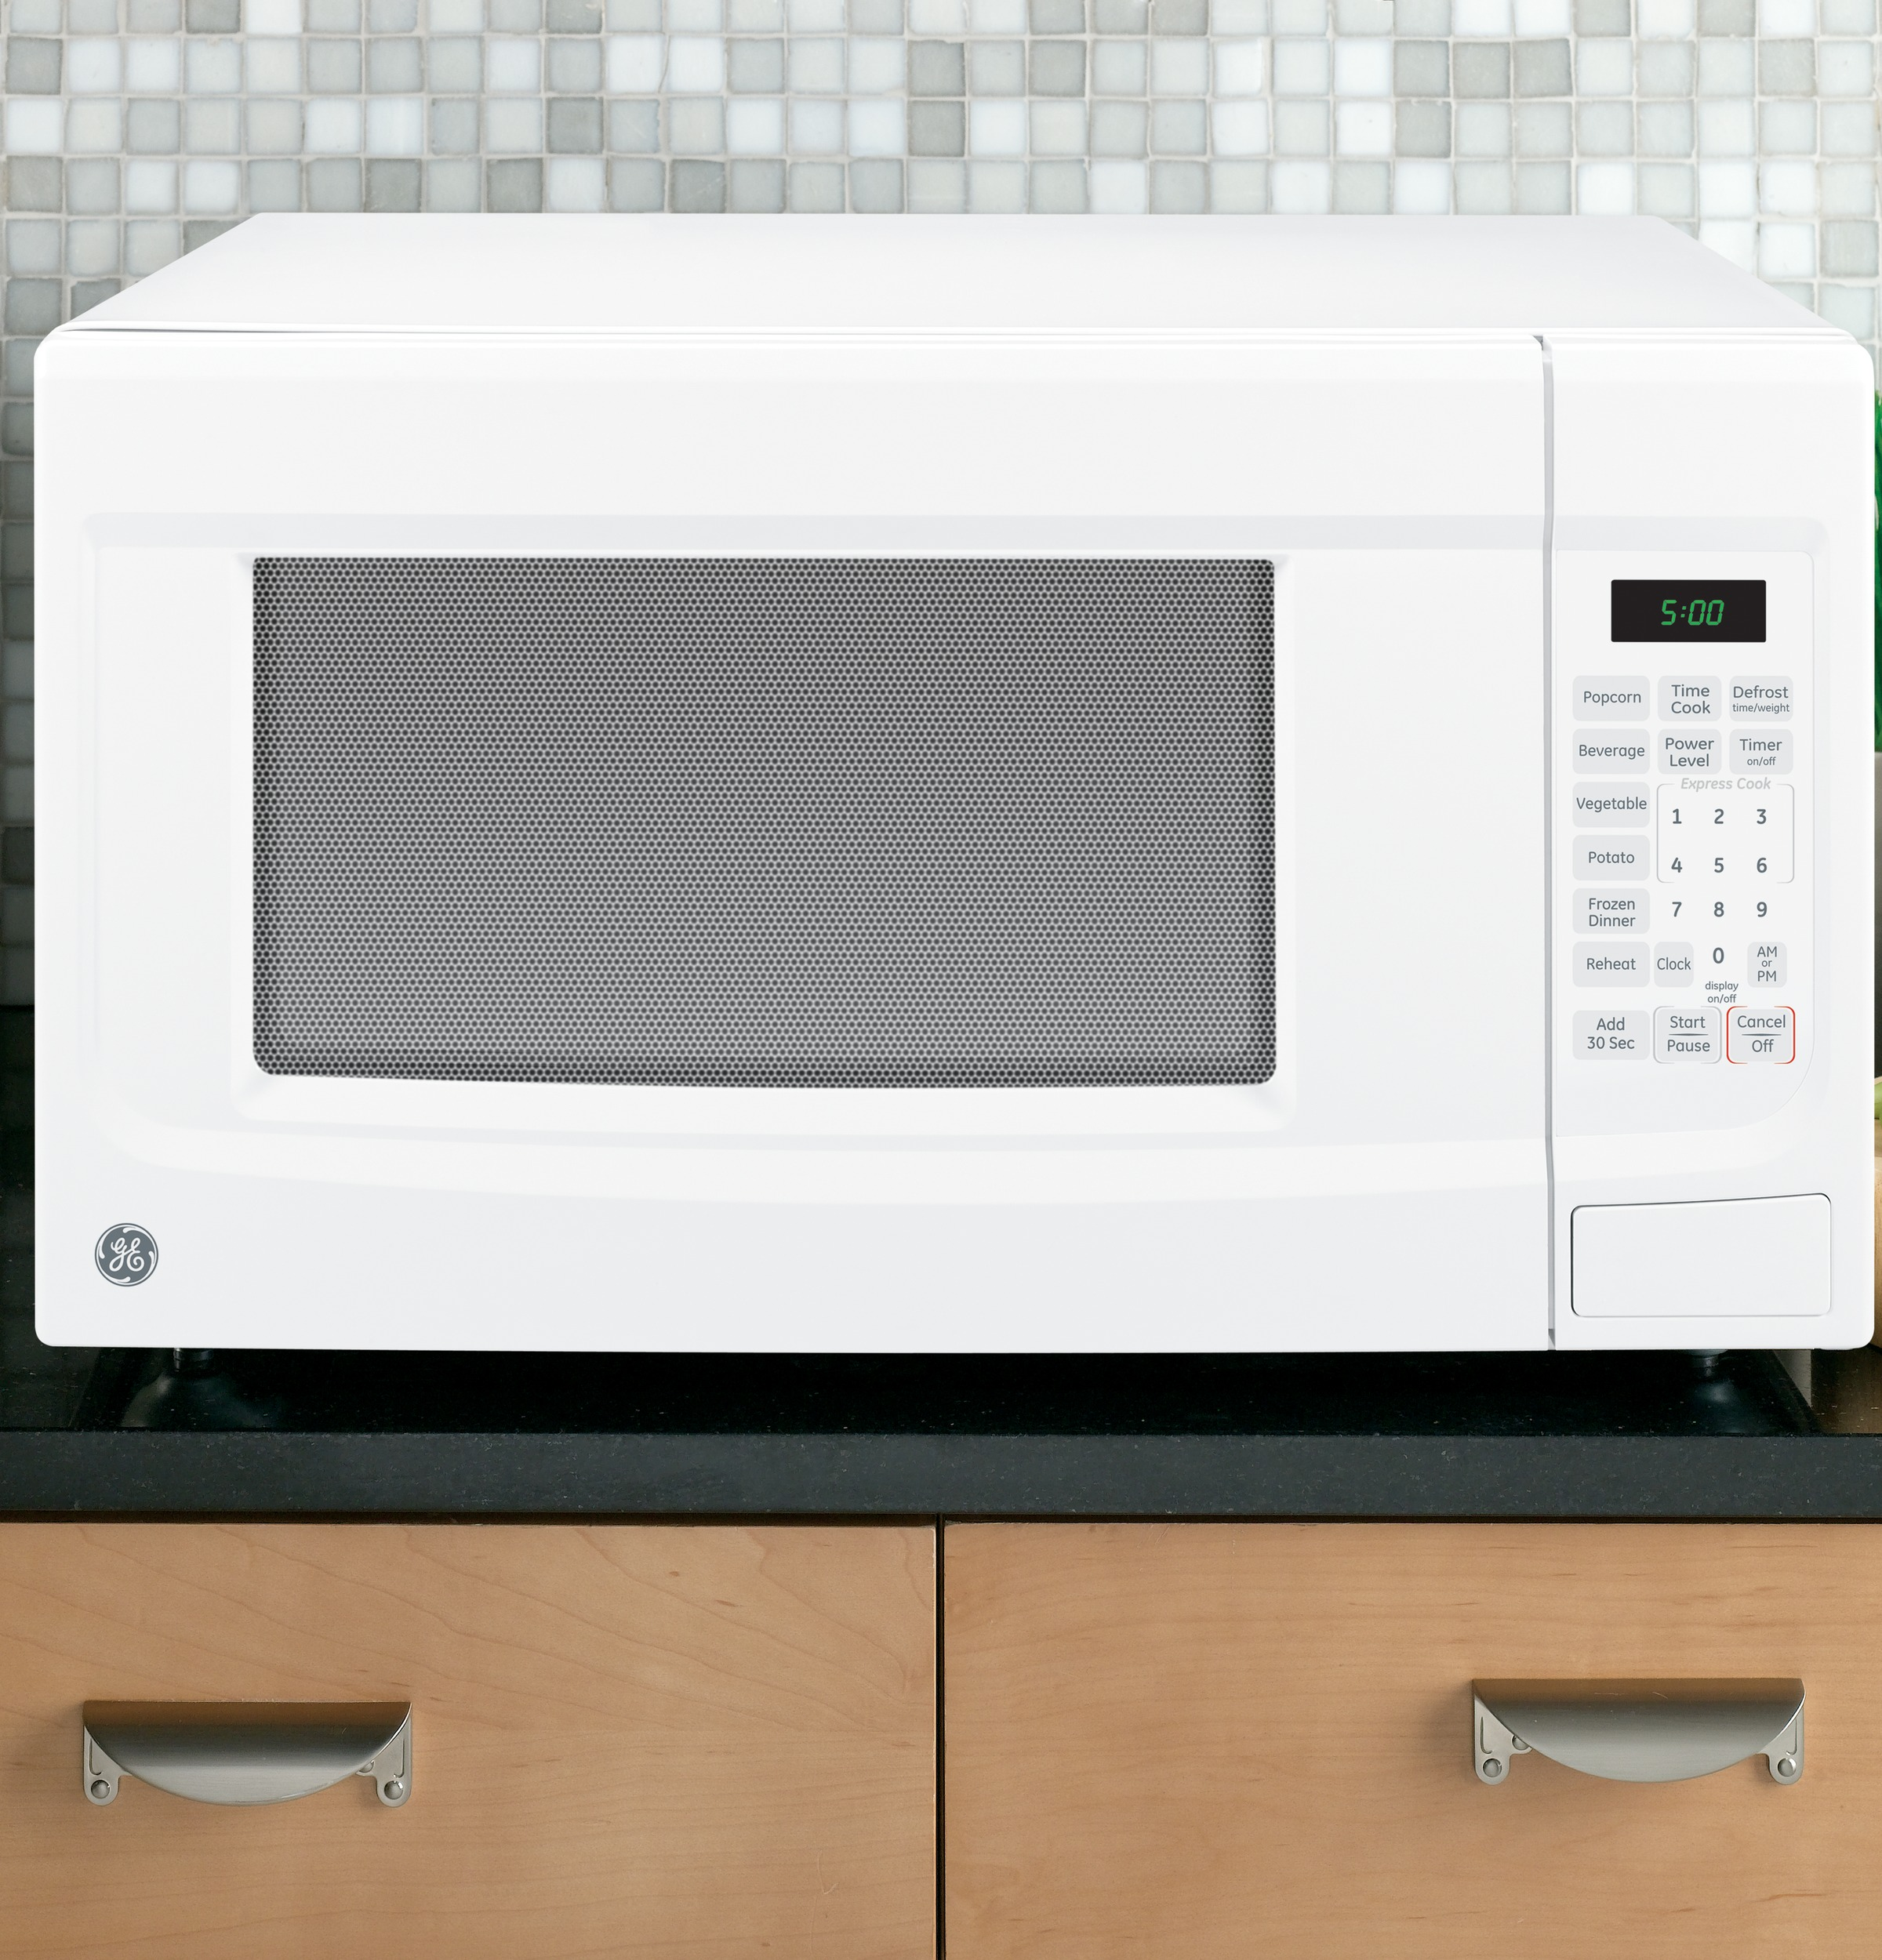 image pcr rated countertops product cu feet helpful countertop customer ovens in oven look reviews microwave stainless best whirlpool